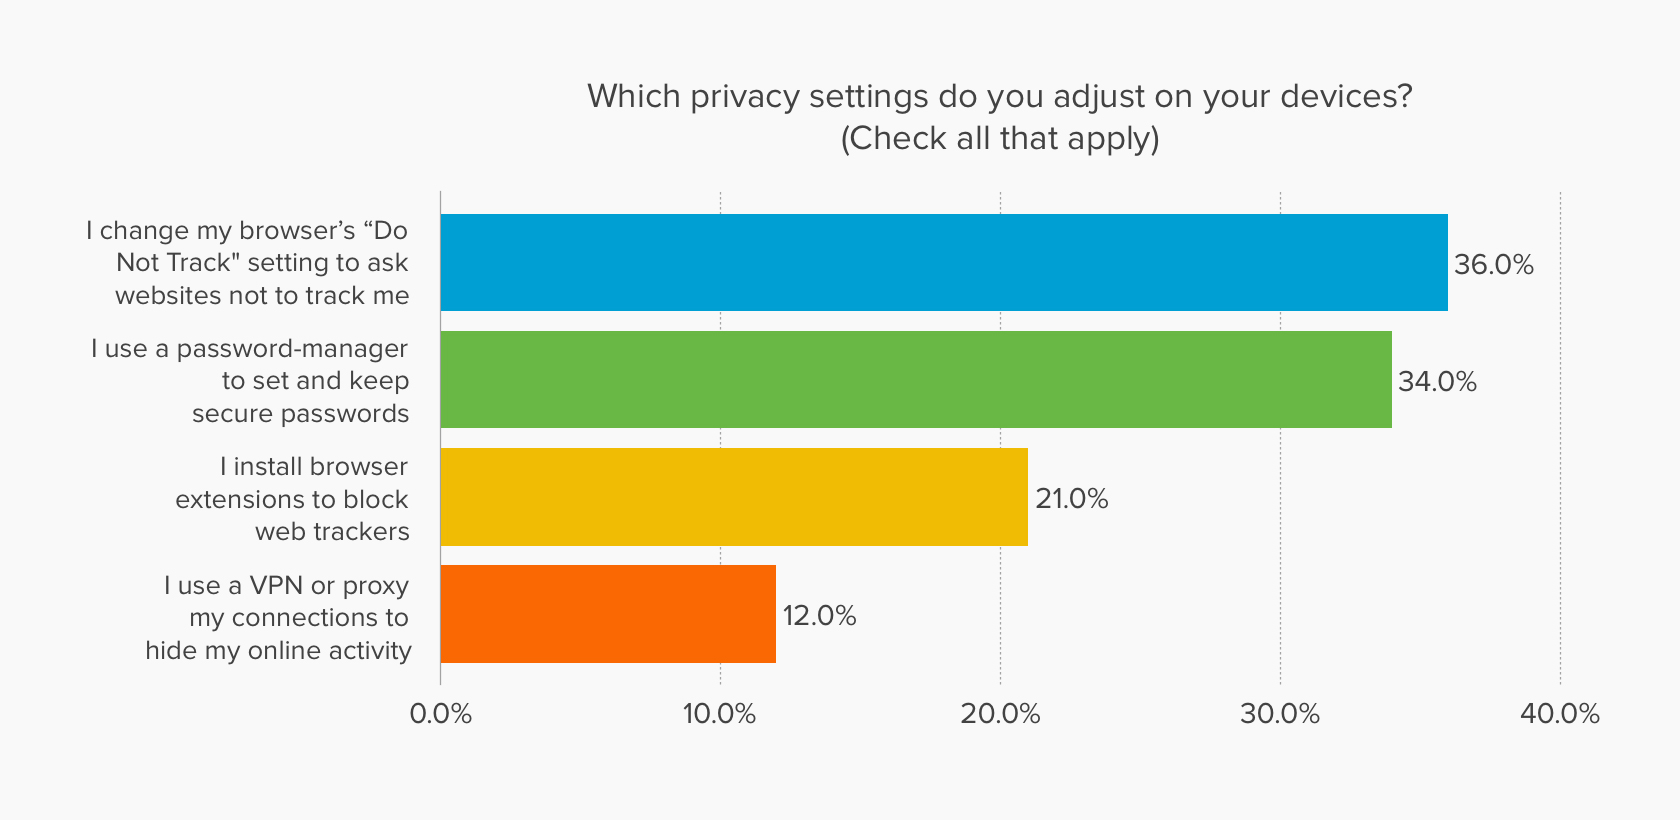 Chart showing privacy settings that users adjust on their devices.